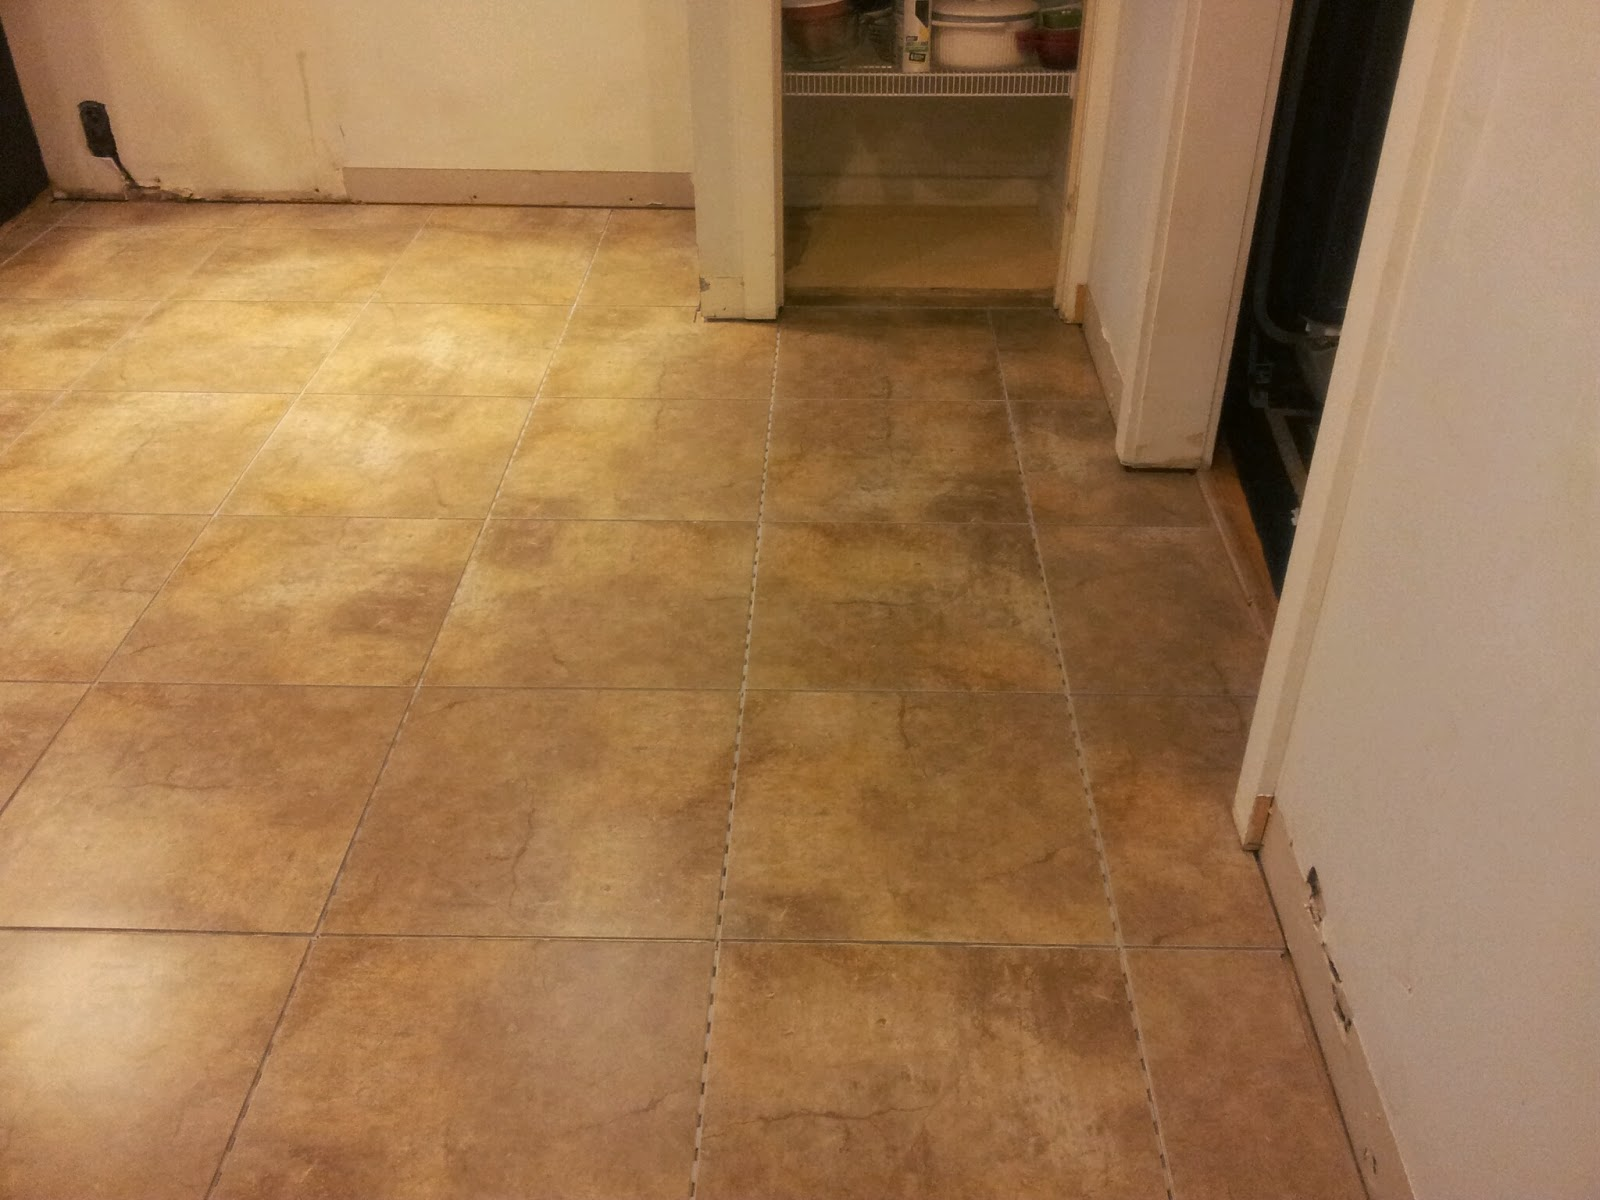 installing kitchen floor tile for home kitchen floor tile The kitchen floor from another angle showing the pantry area Again we saw no need to tile inside the pantry since we will be installing more shelving at